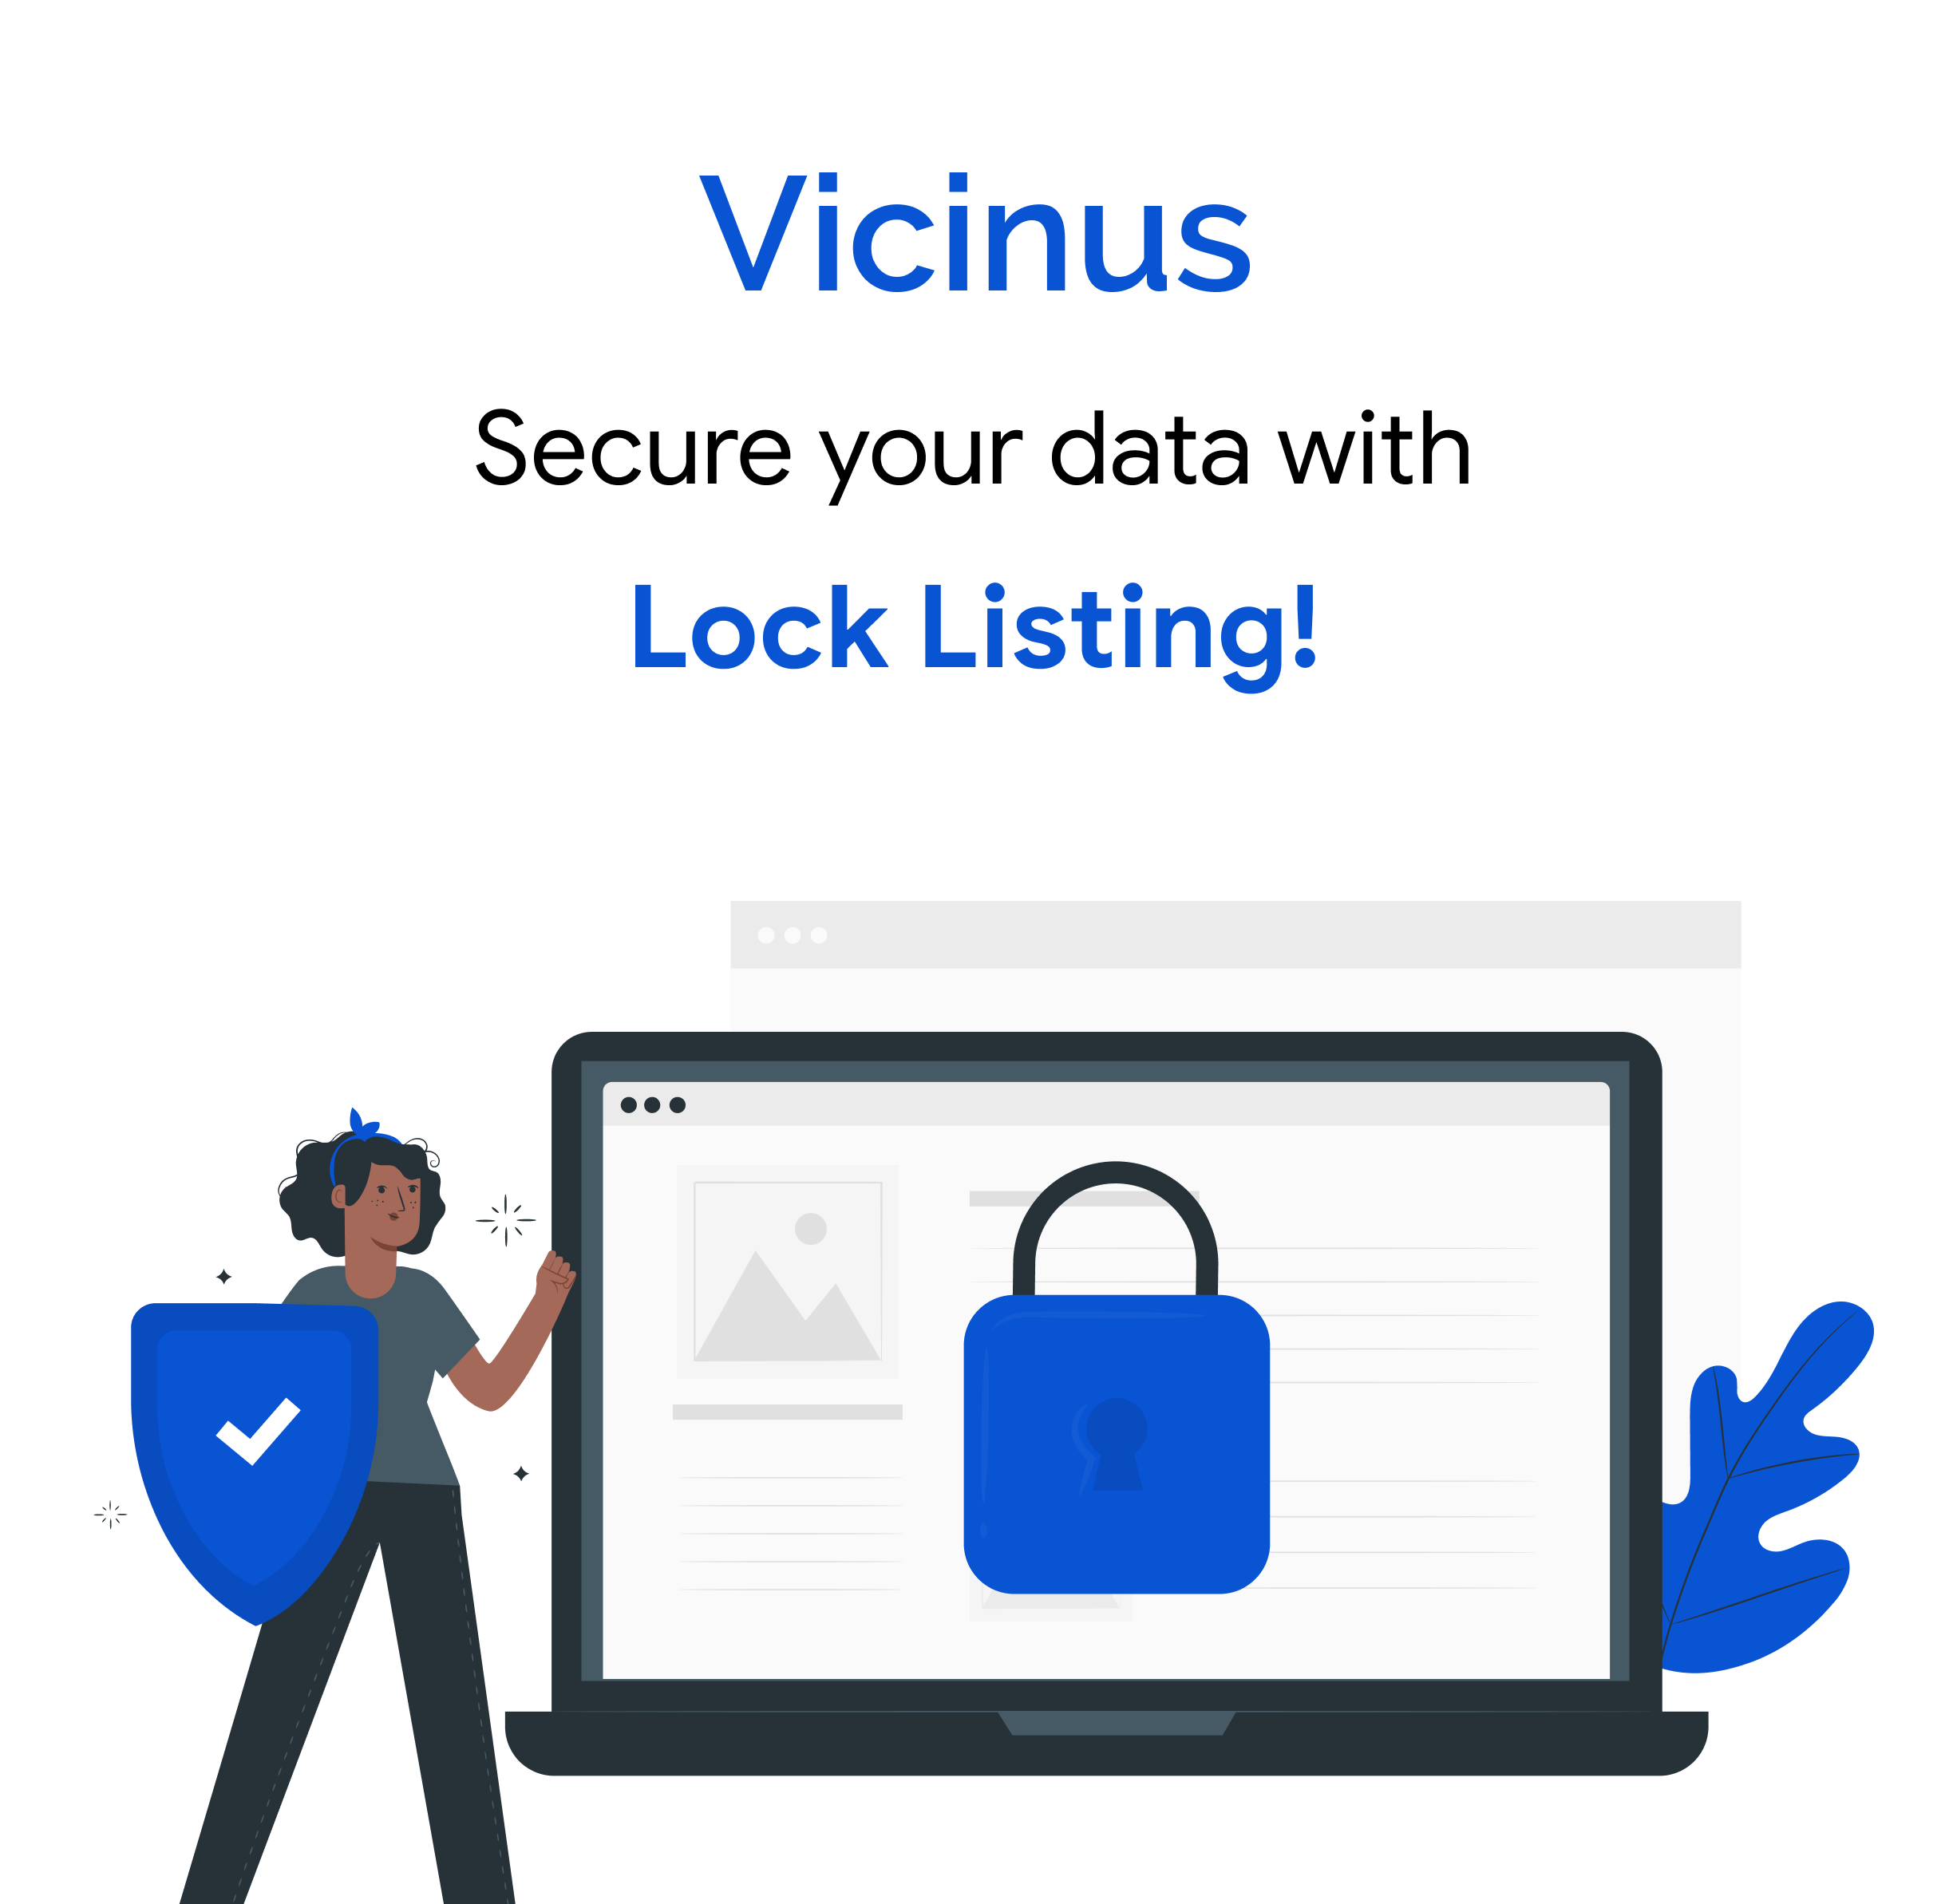 Lock listing graphic. Text says 'secure your data with lock listing!'. Image shows a woman holding a shield with a tick in it, standing next to a laptop which shows a padlock on the screen to represent protecting business listing data from external edits